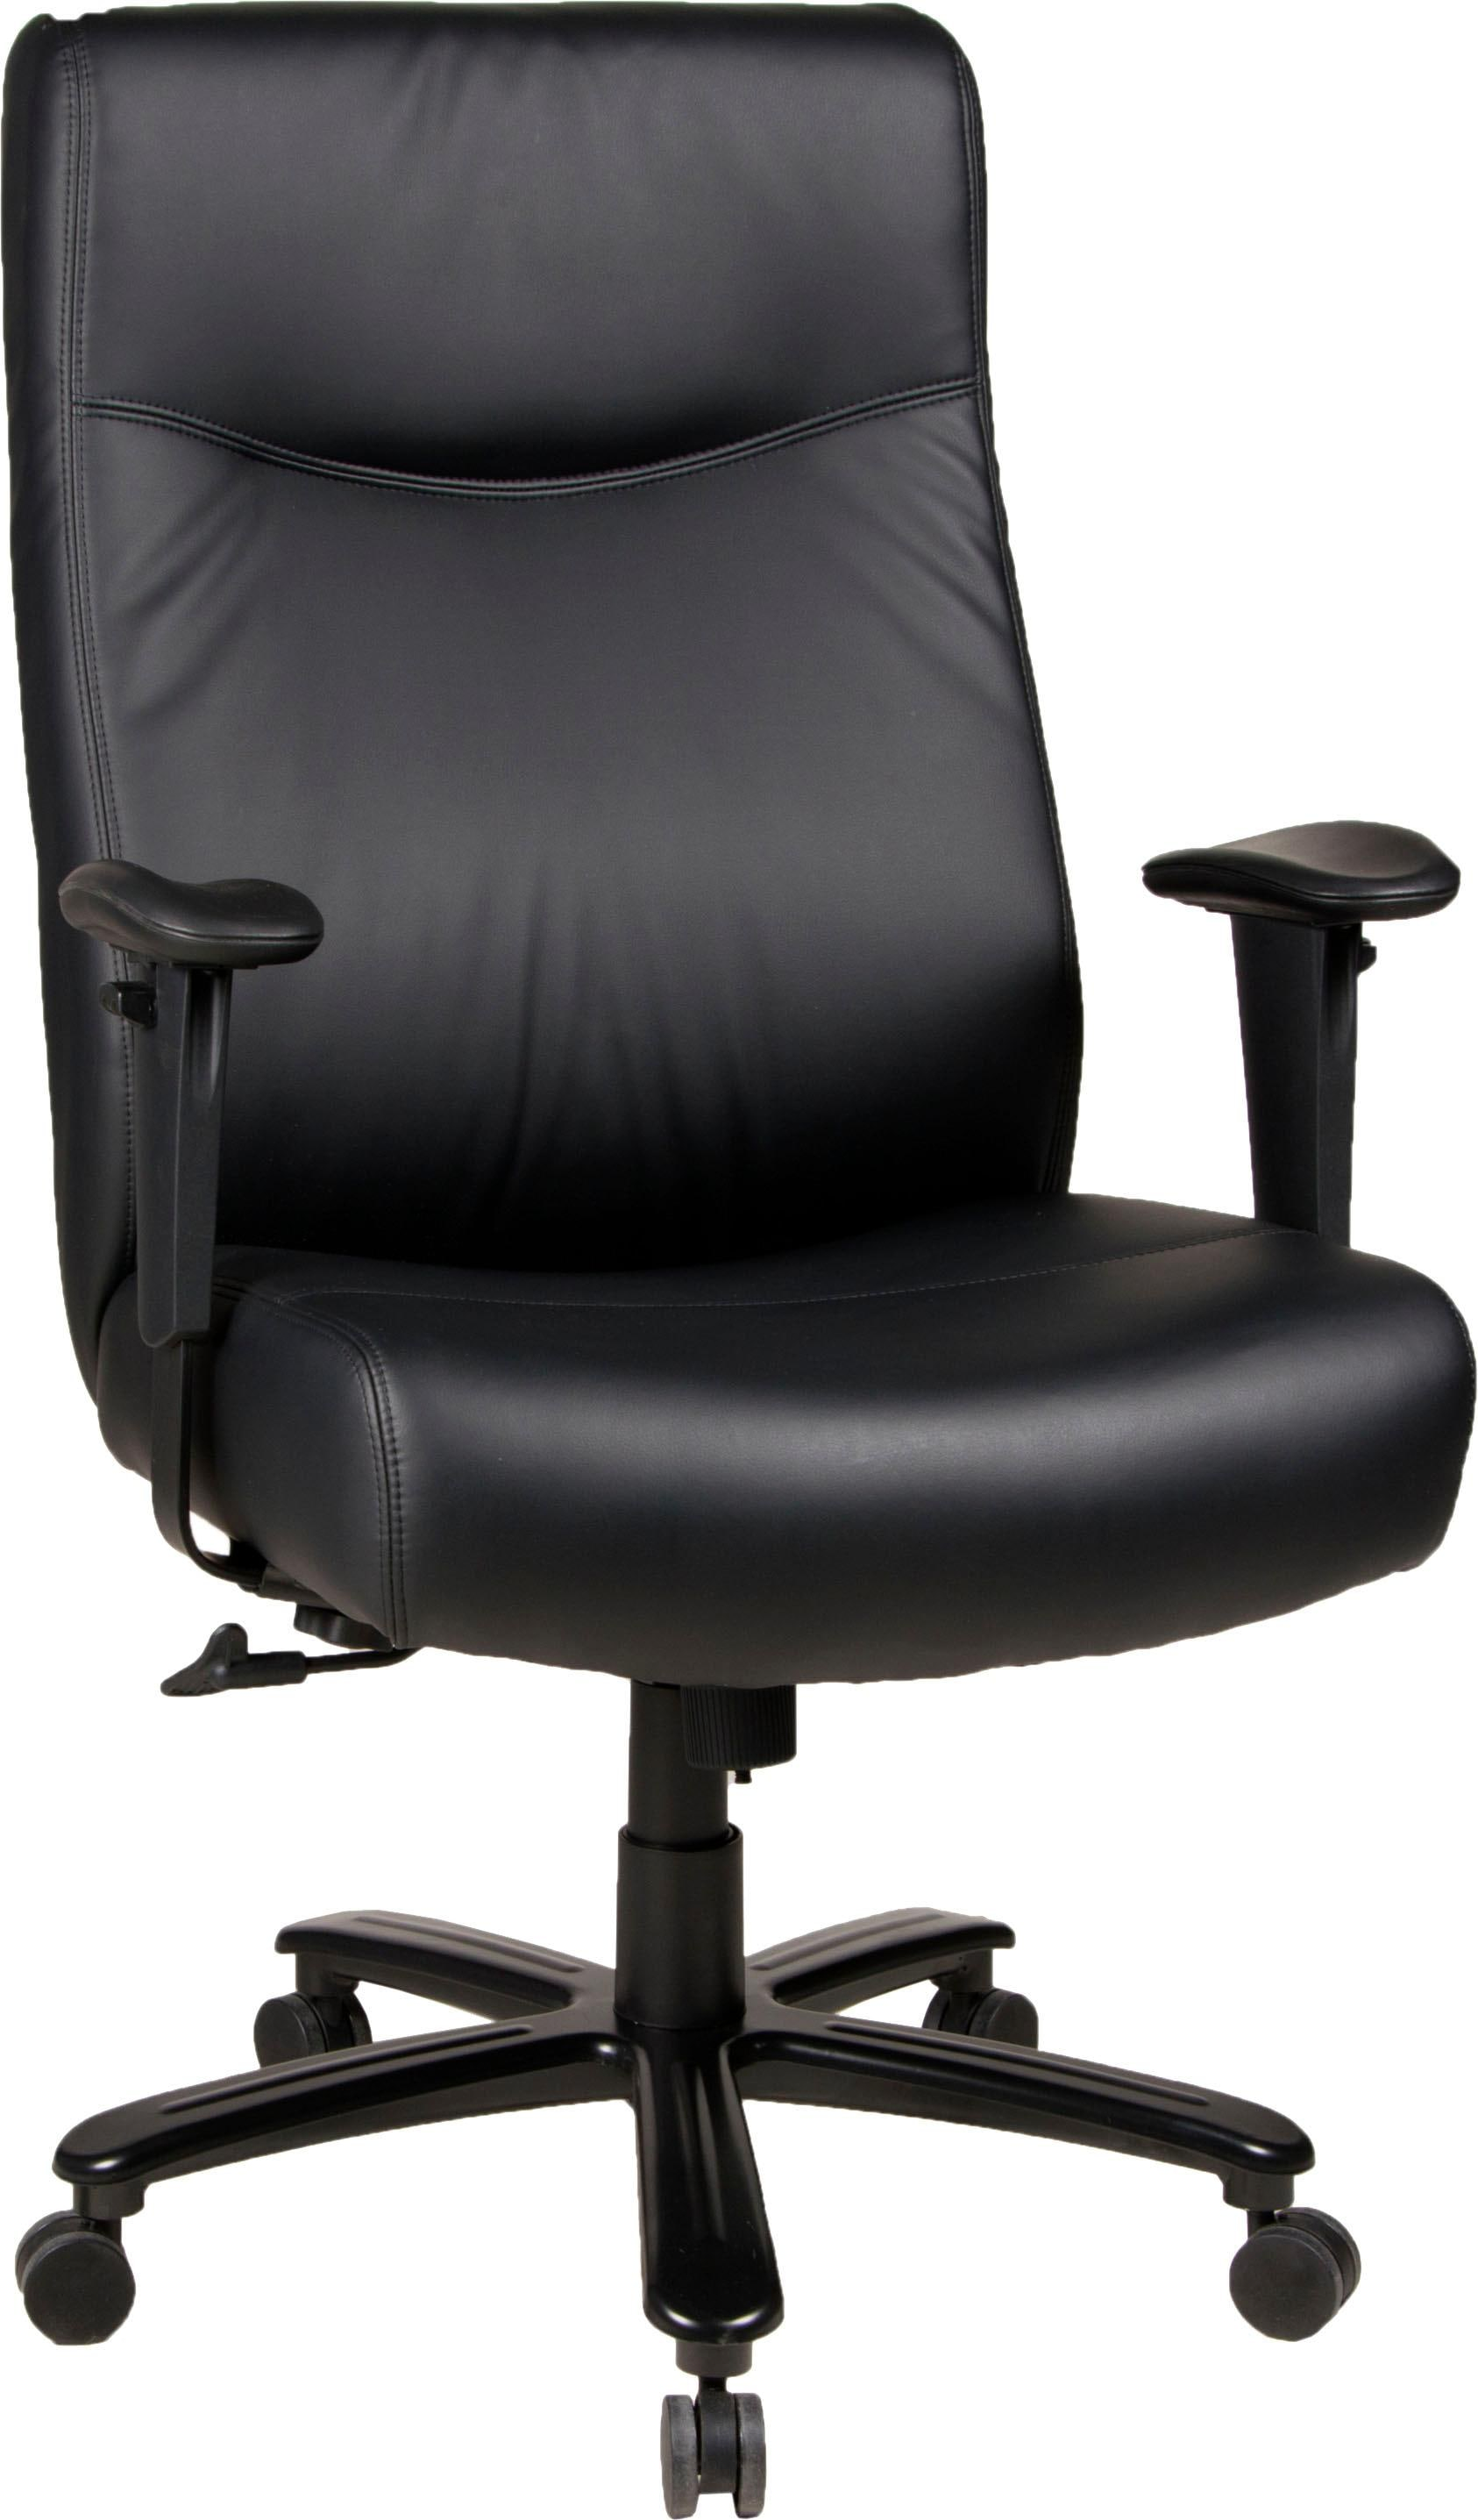 Duo Collection Chefsessel Paolo XXXL | Büro > Bürostühle und Sessel  > Chefsessel | Duo Collection